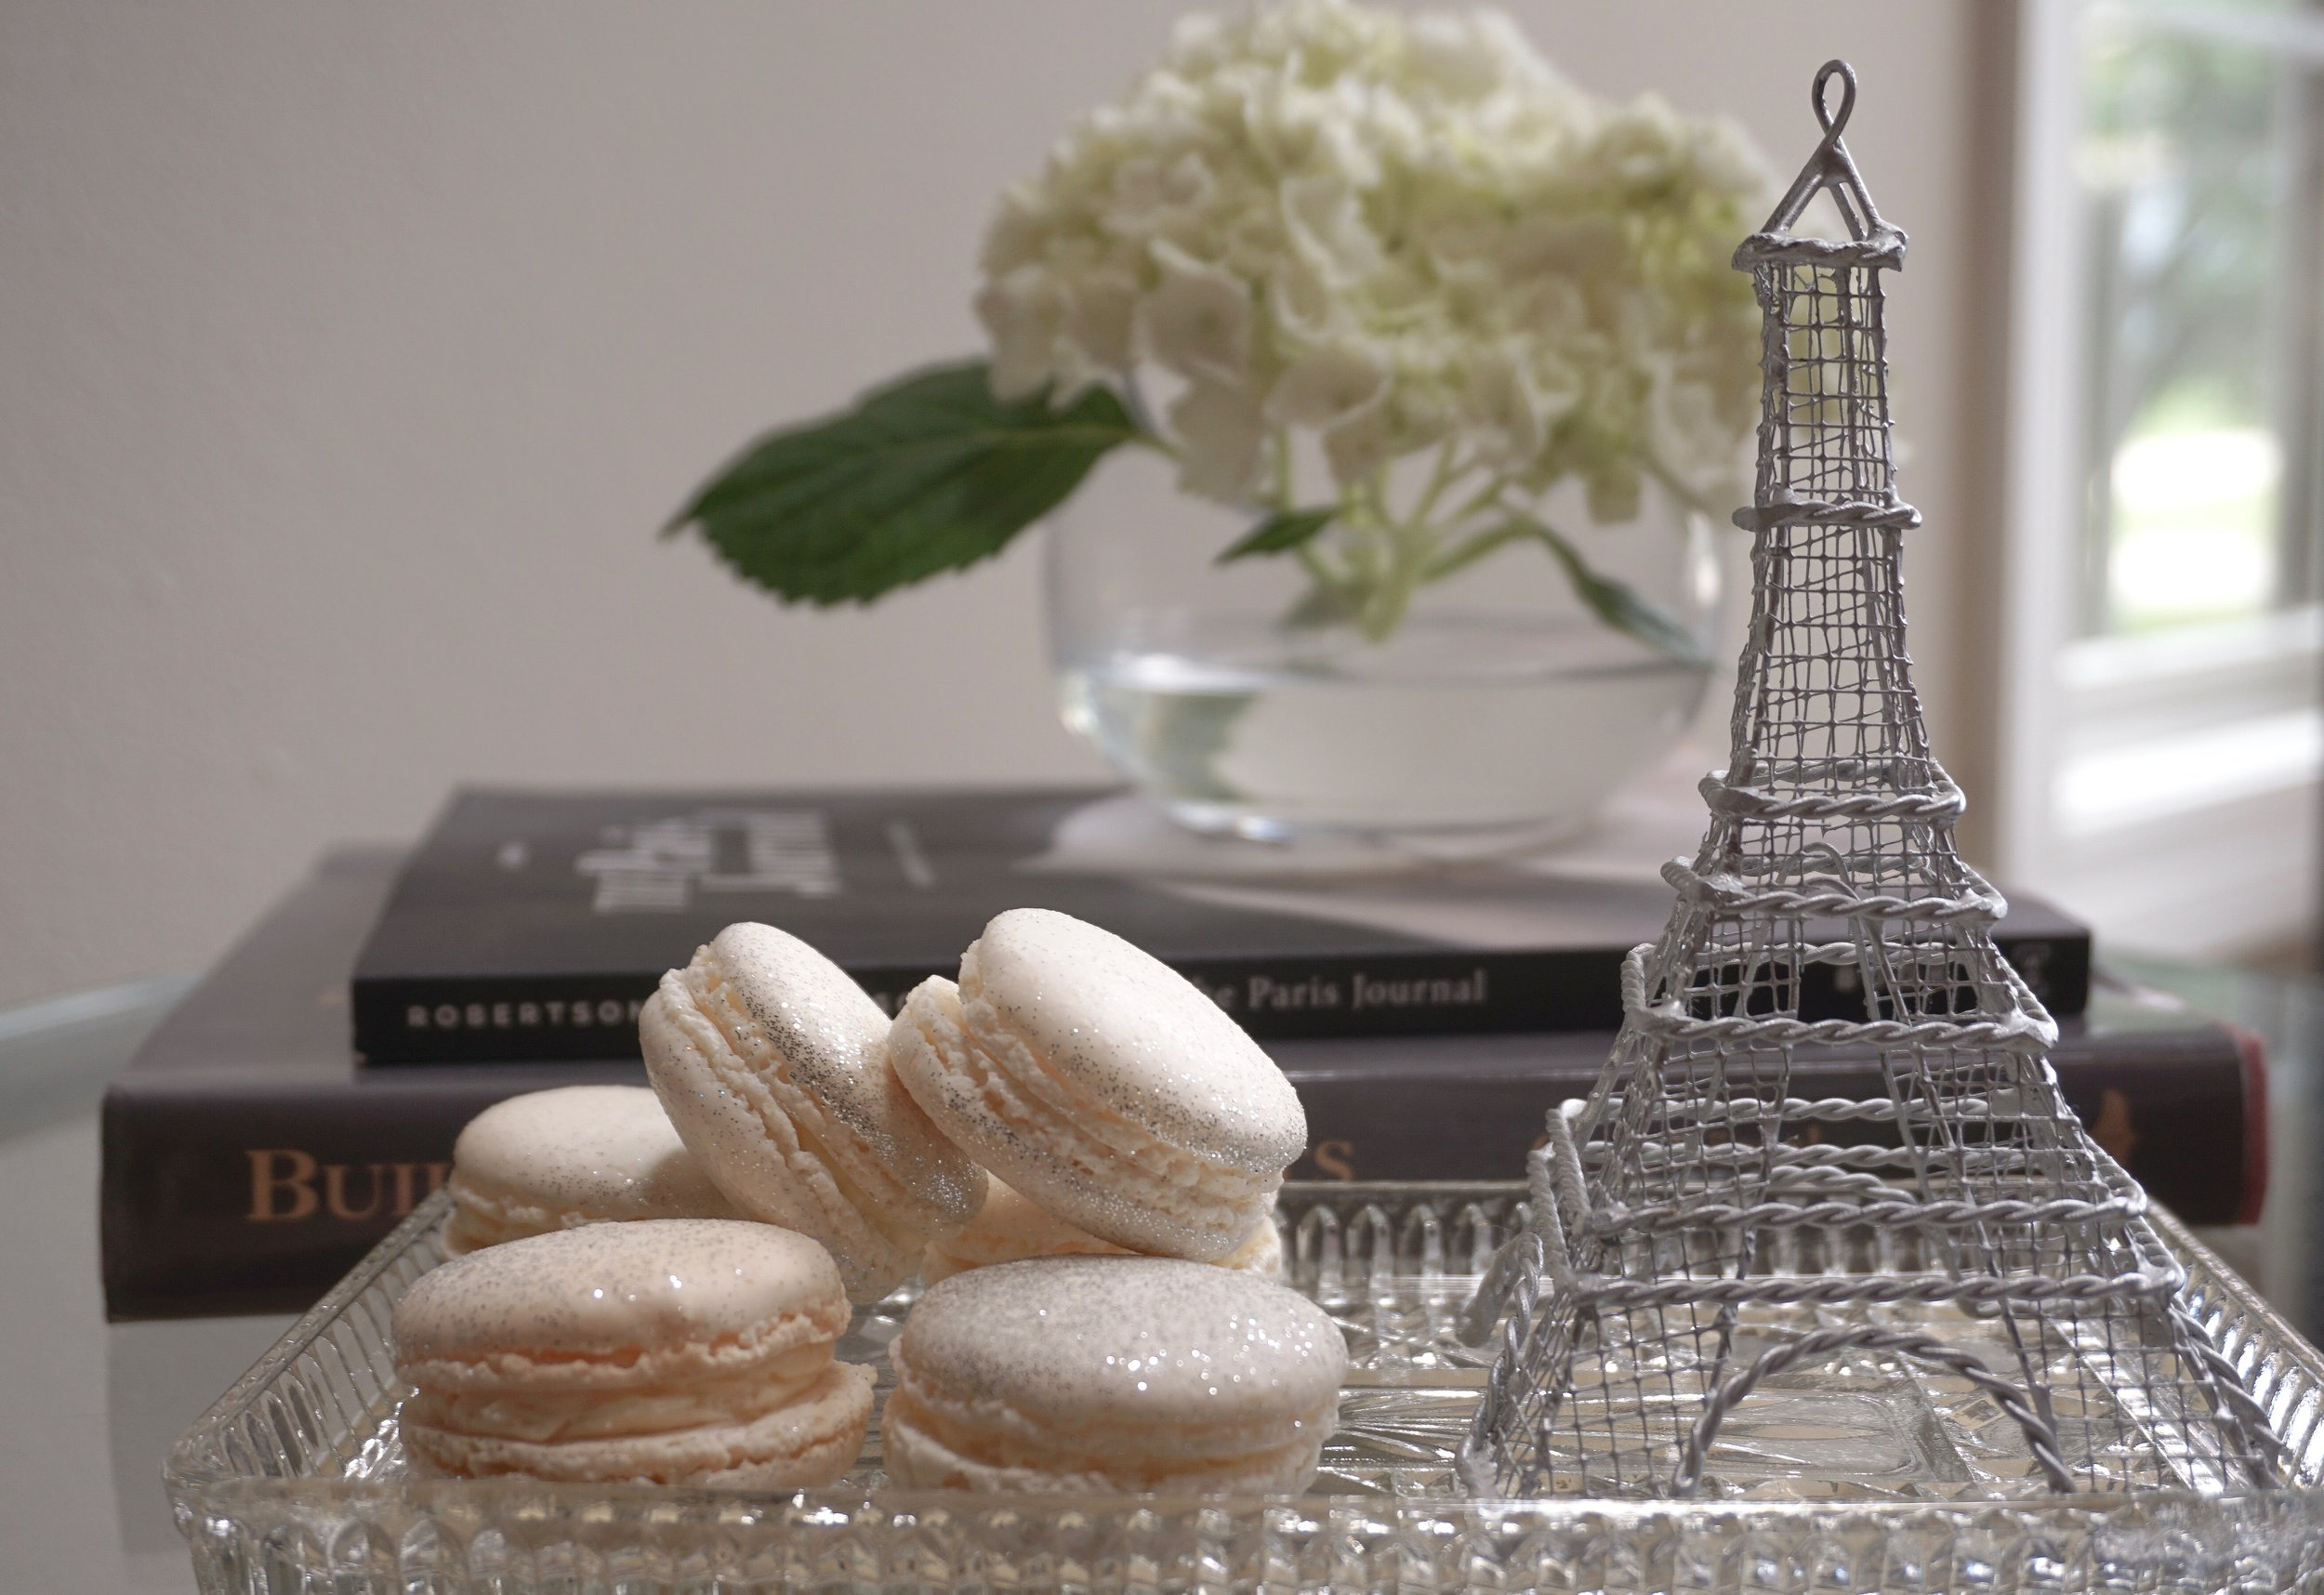 It can't be a coincidence that today is the first day of spring, National Happiness Day (Why is there just one day?), and La Journée internationale du macaron!